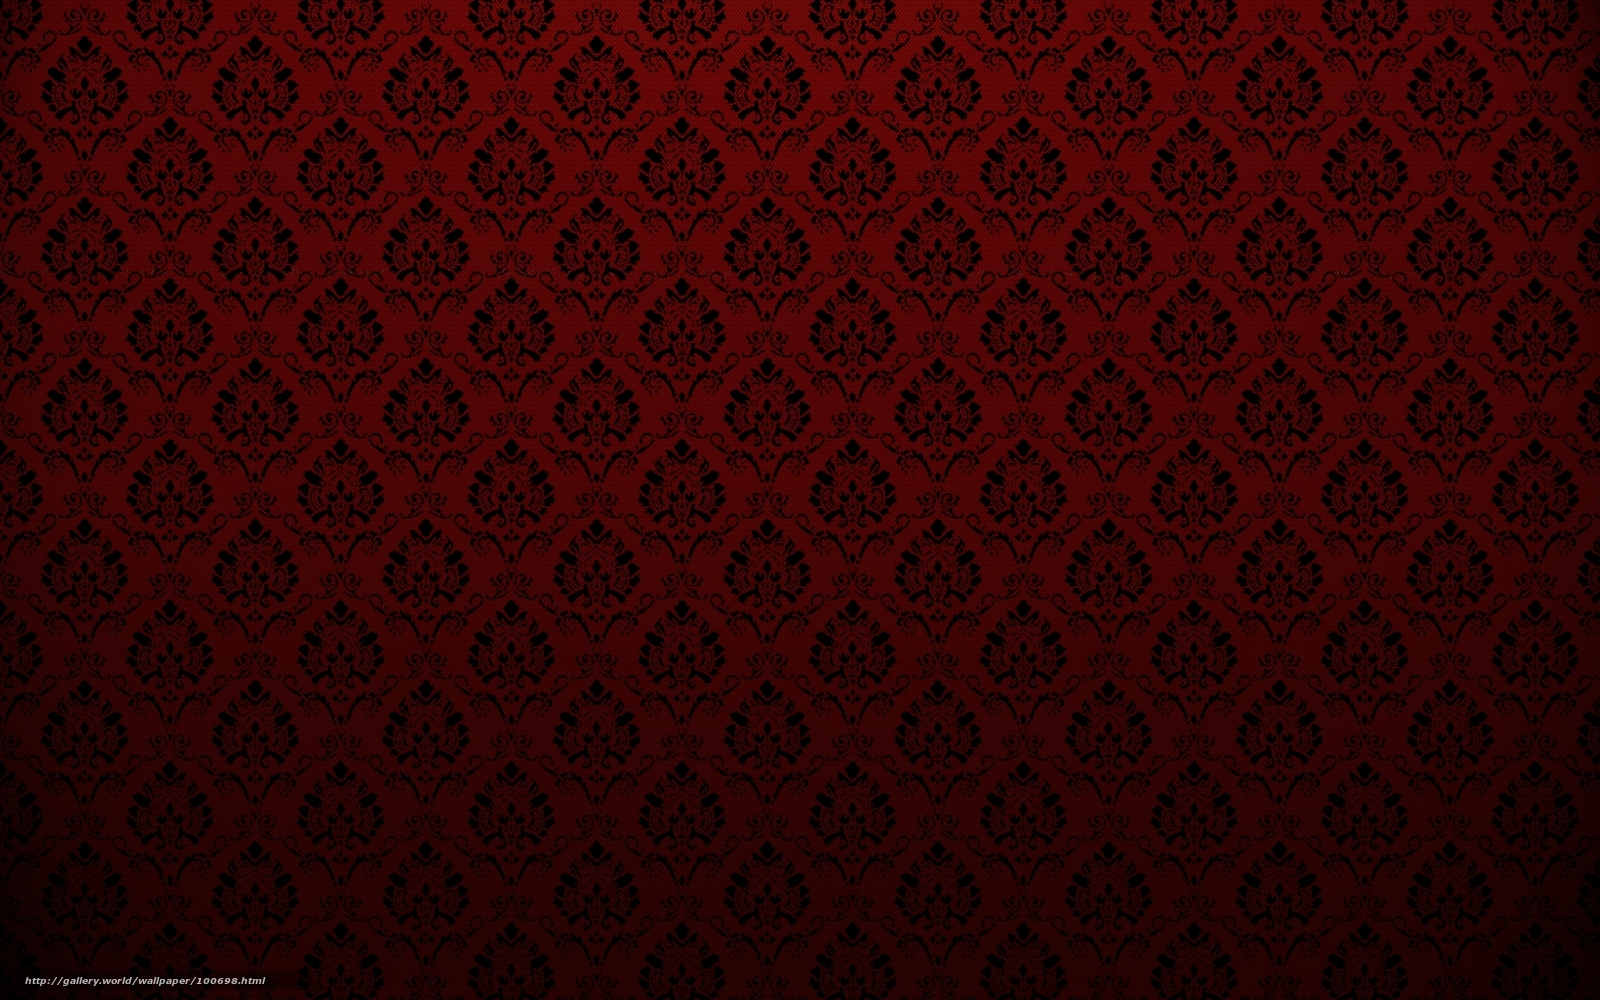 download hintergrund rot textur tapete muster freie desktop tapeten in der auflosung. Black Bedroom Furniture Sets. Home Design Ideas